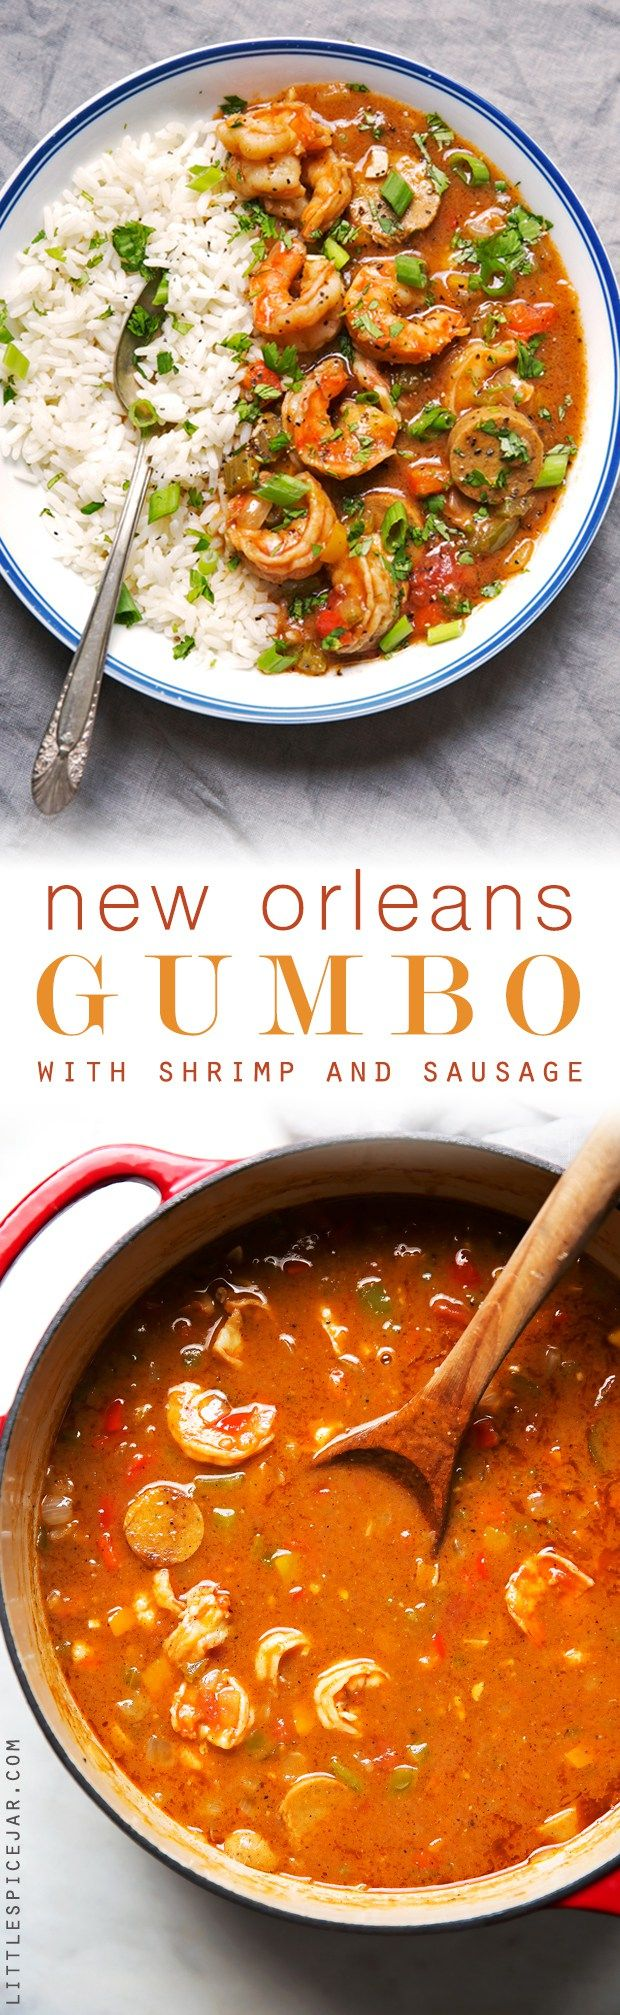 New Orleans Gumbo with Shrimp and Sausage – my take on Gumbo! This recipe makes ev